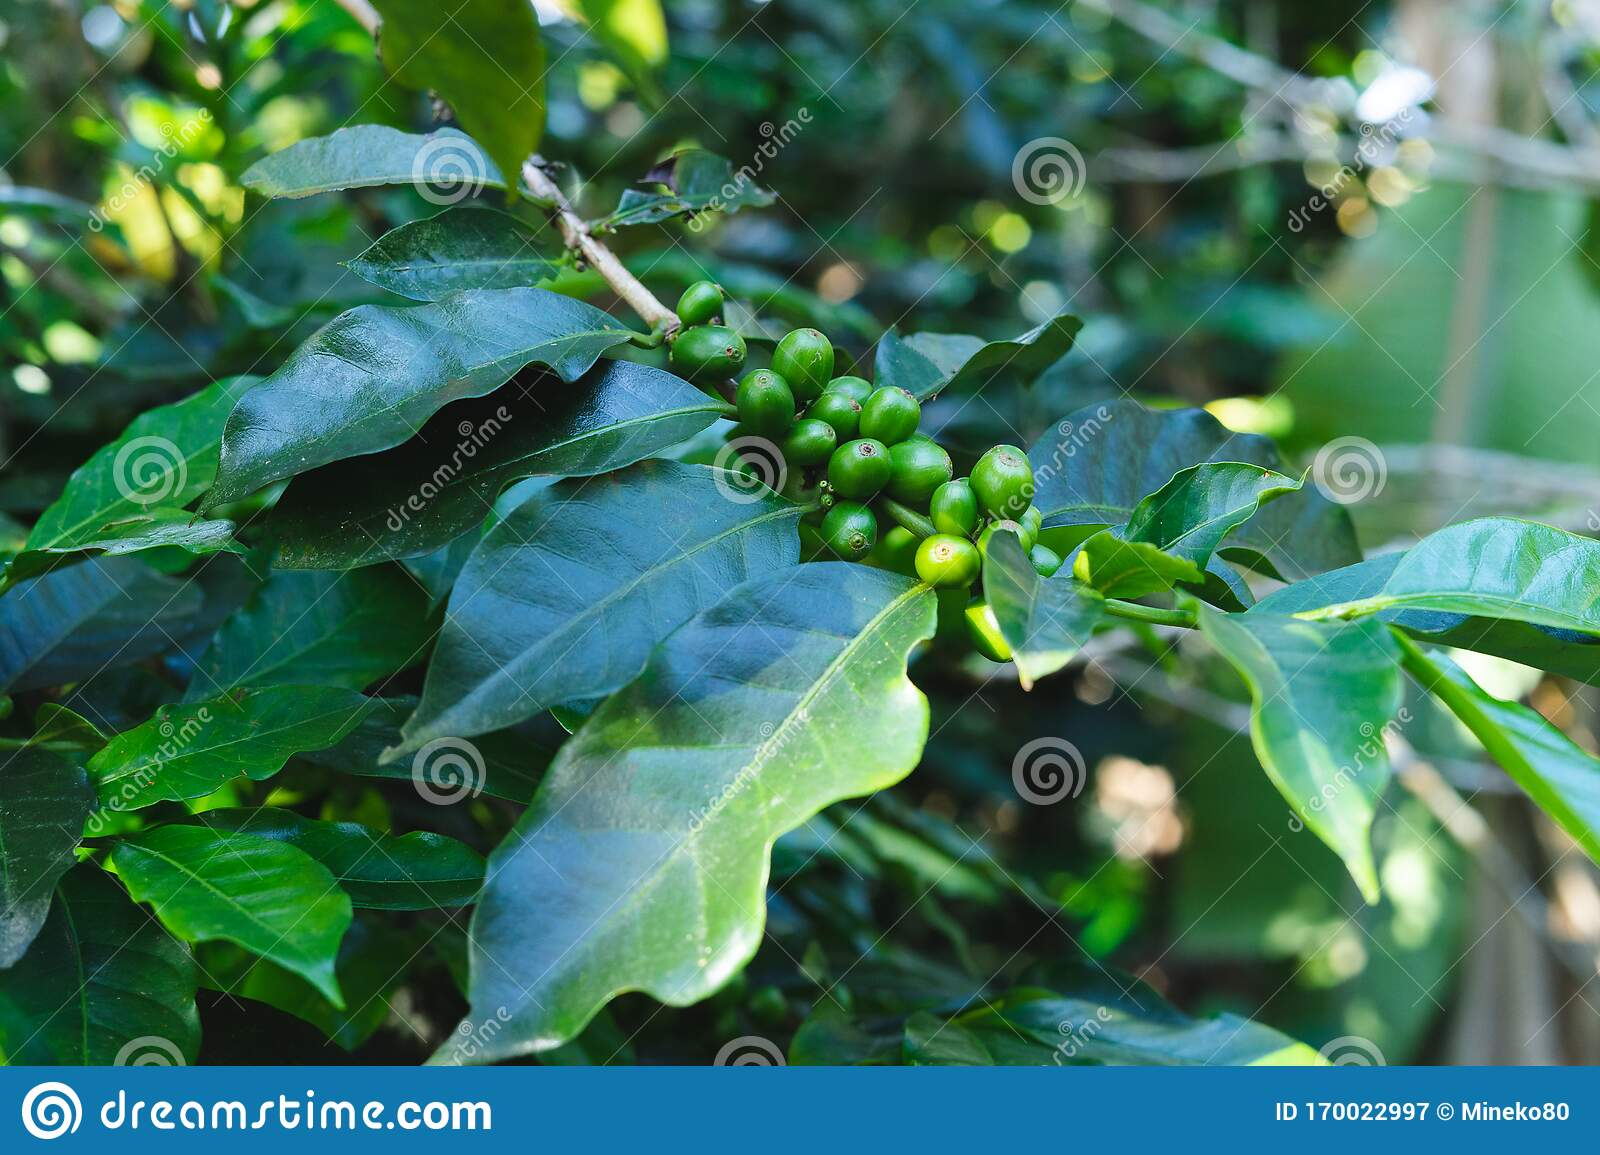 Detail Of Green Coffee Beans In The Plant Coffee Concept Stock